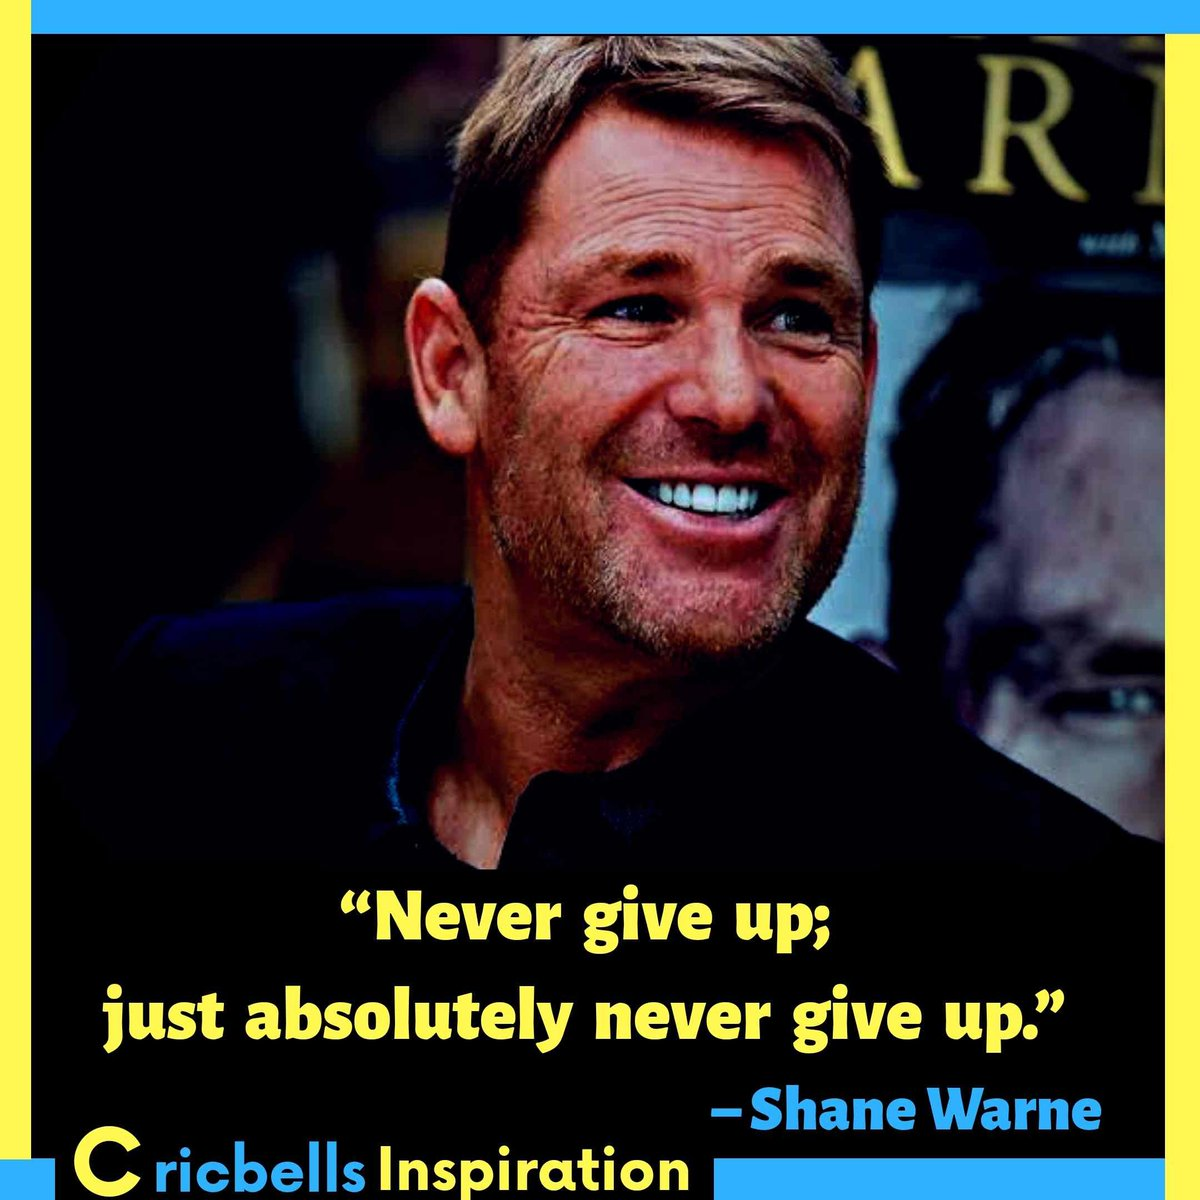 """#Inspiration""""Never give up; just absolutely never give up."""" – Shane Warne . Follow Me 👉☑️🔵 Cricket Bells #shanewarne #inspire #motivational #legendsquotes #shanewarnequotes #teamindia #FridayThoughts #goodnight #fridaymorning #FridayMotivation #fridayvibes #Cricket #follow Me https://t.co/tOTKFdR4IL"""